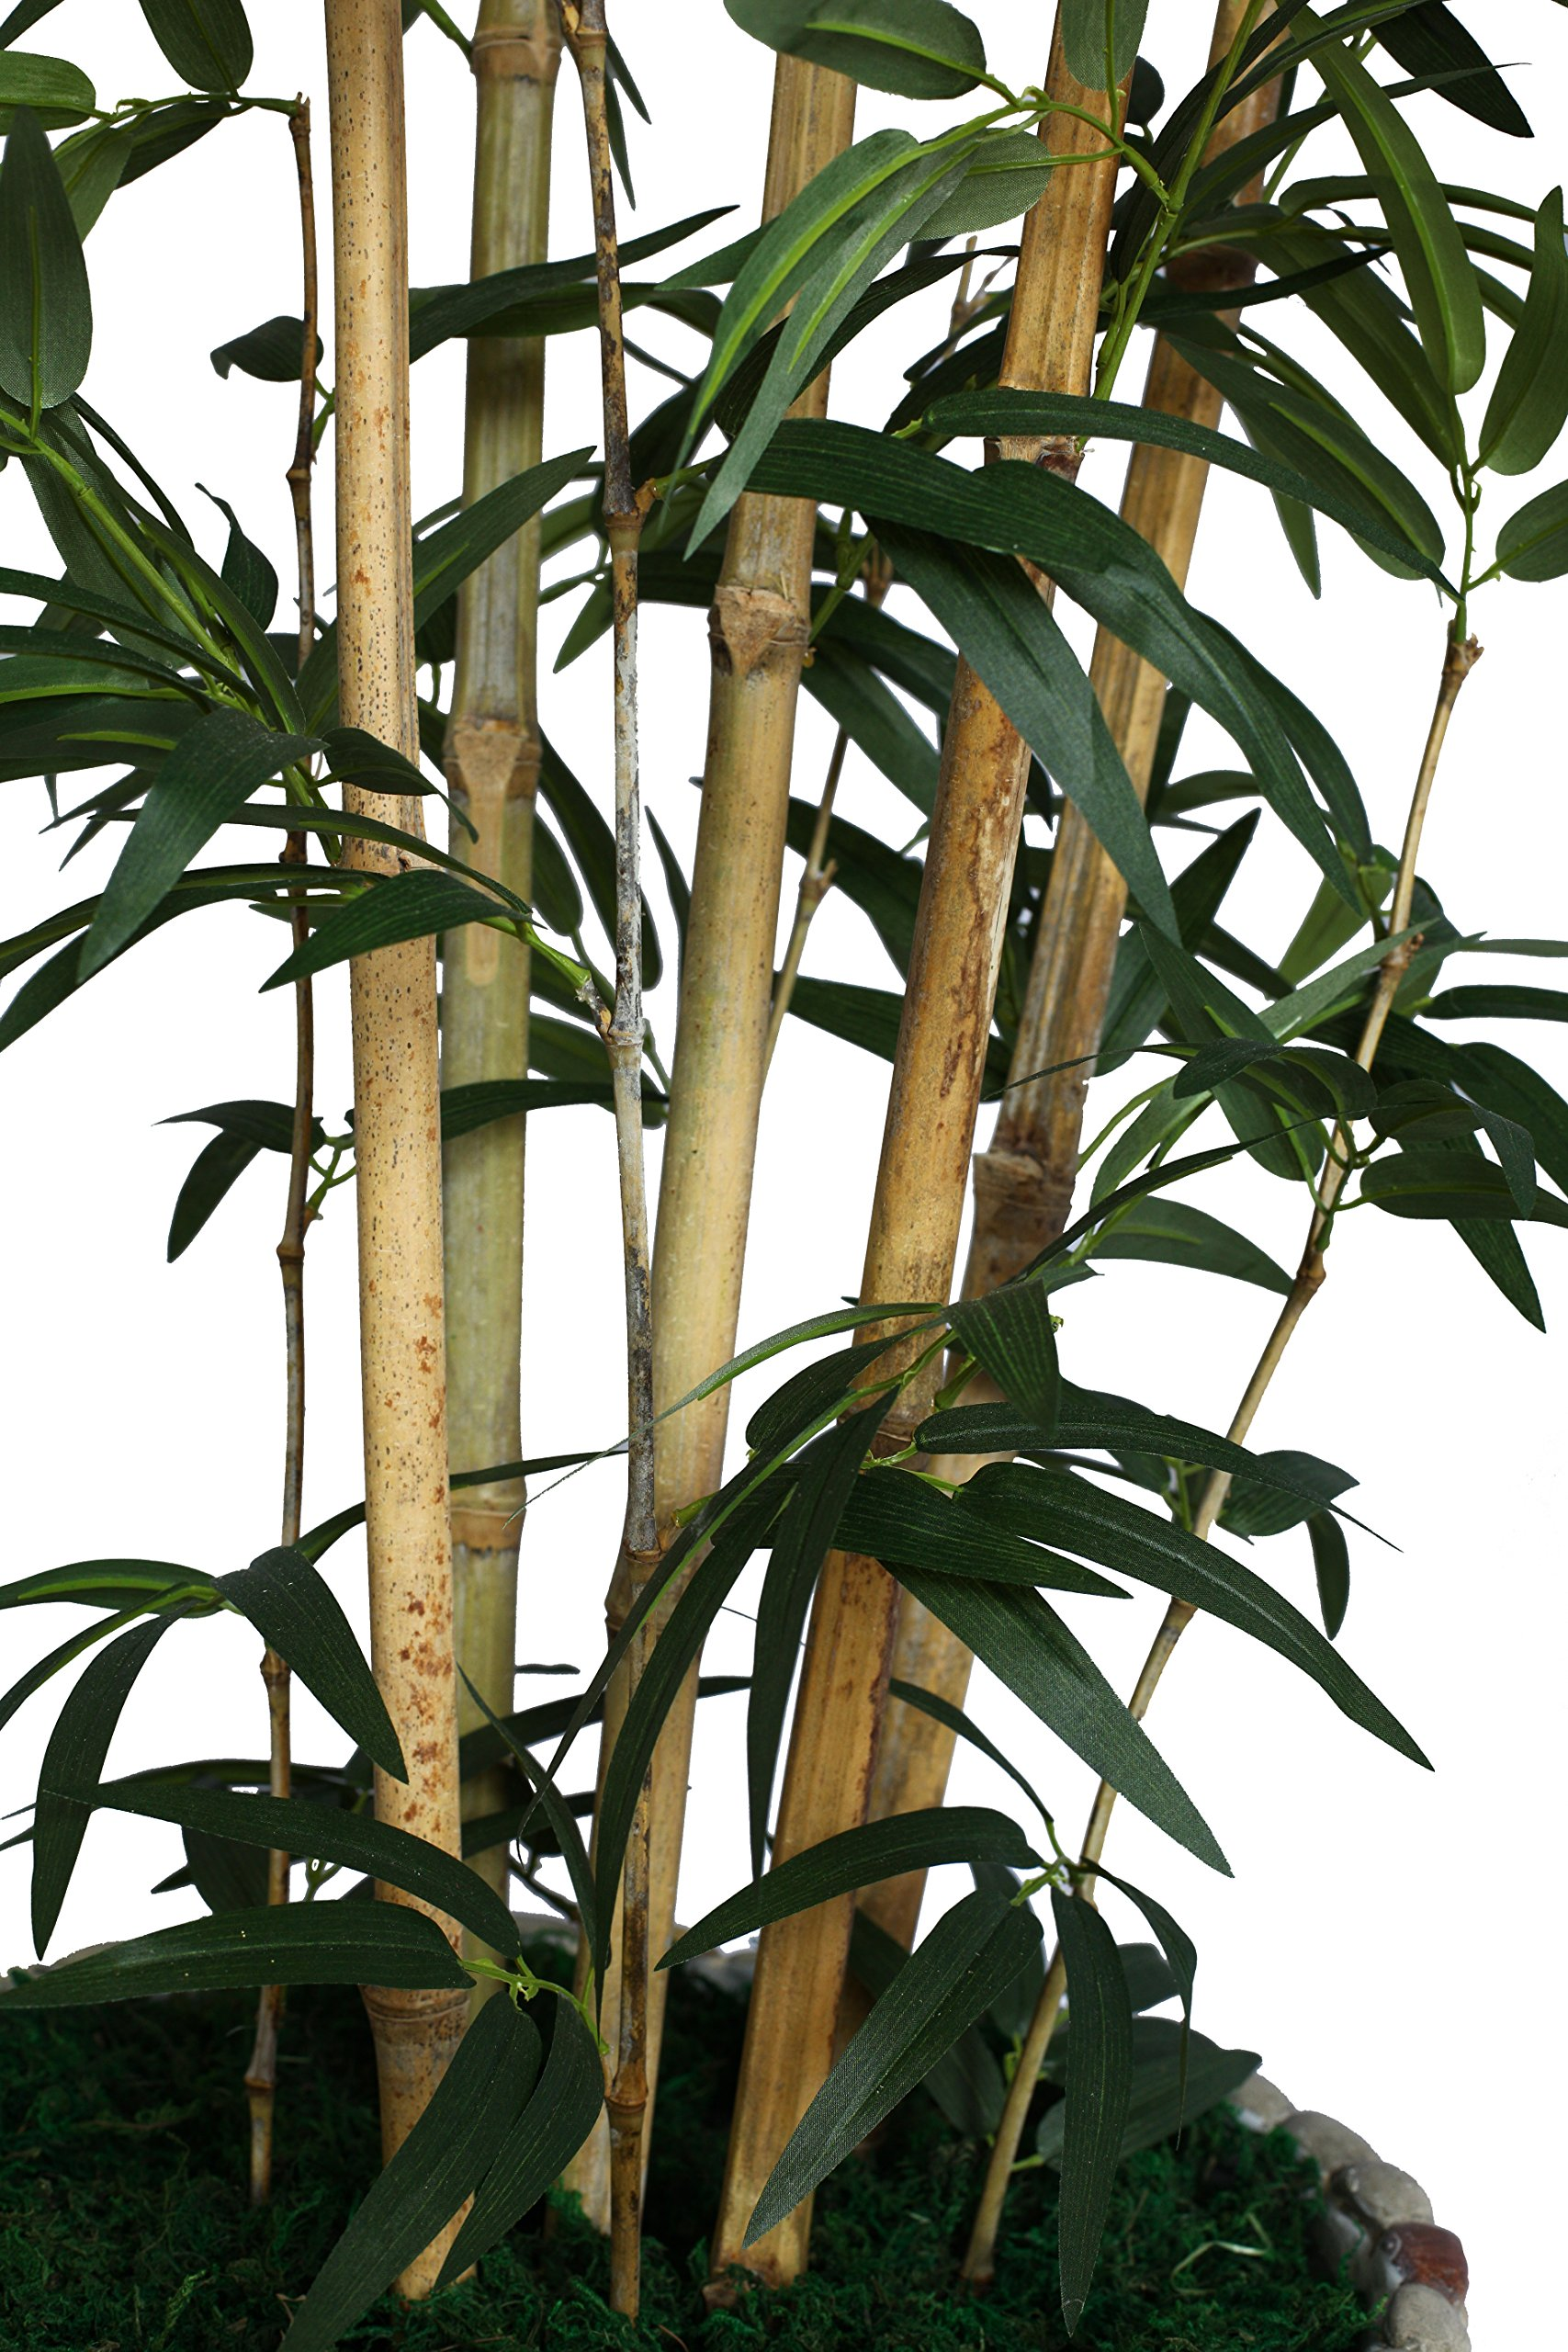 Laura Ashley VHX116209 86-Inch Natural Bamboo Tree in 16-Inch Fiber Stone Planter by Laura Ashley (Image #2)